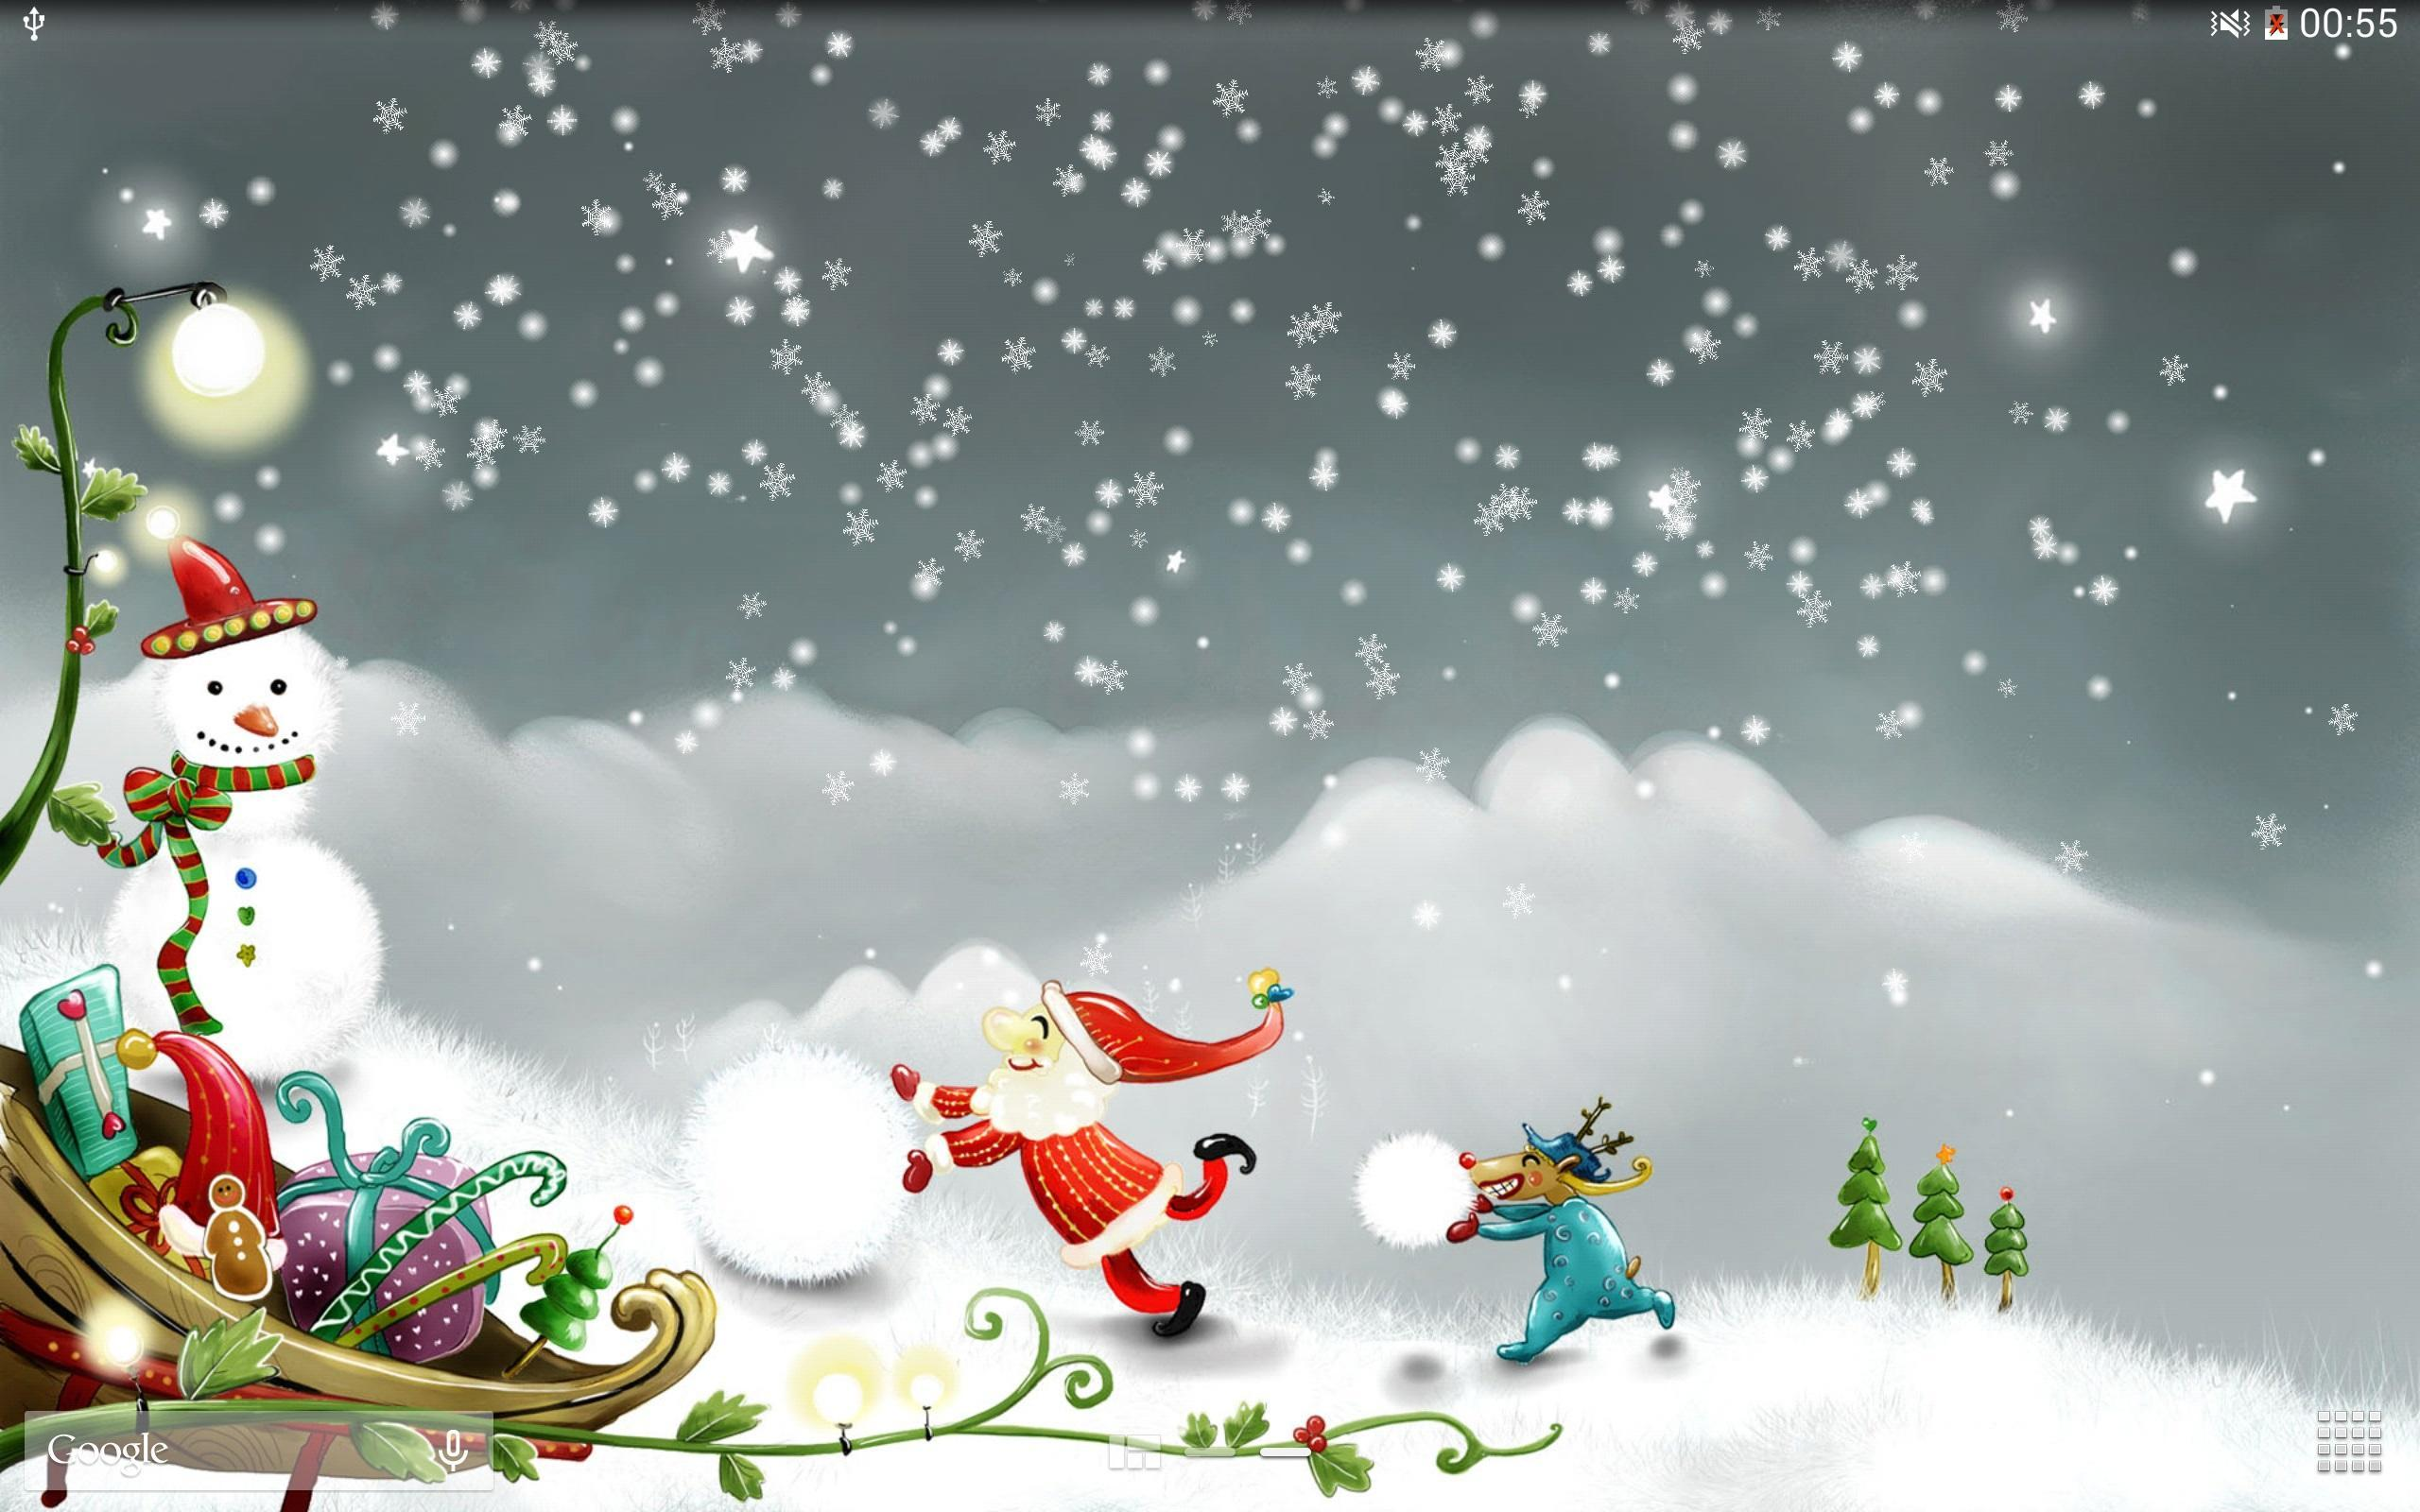 Christmas Snow Live Wallpaper For Android APK Download